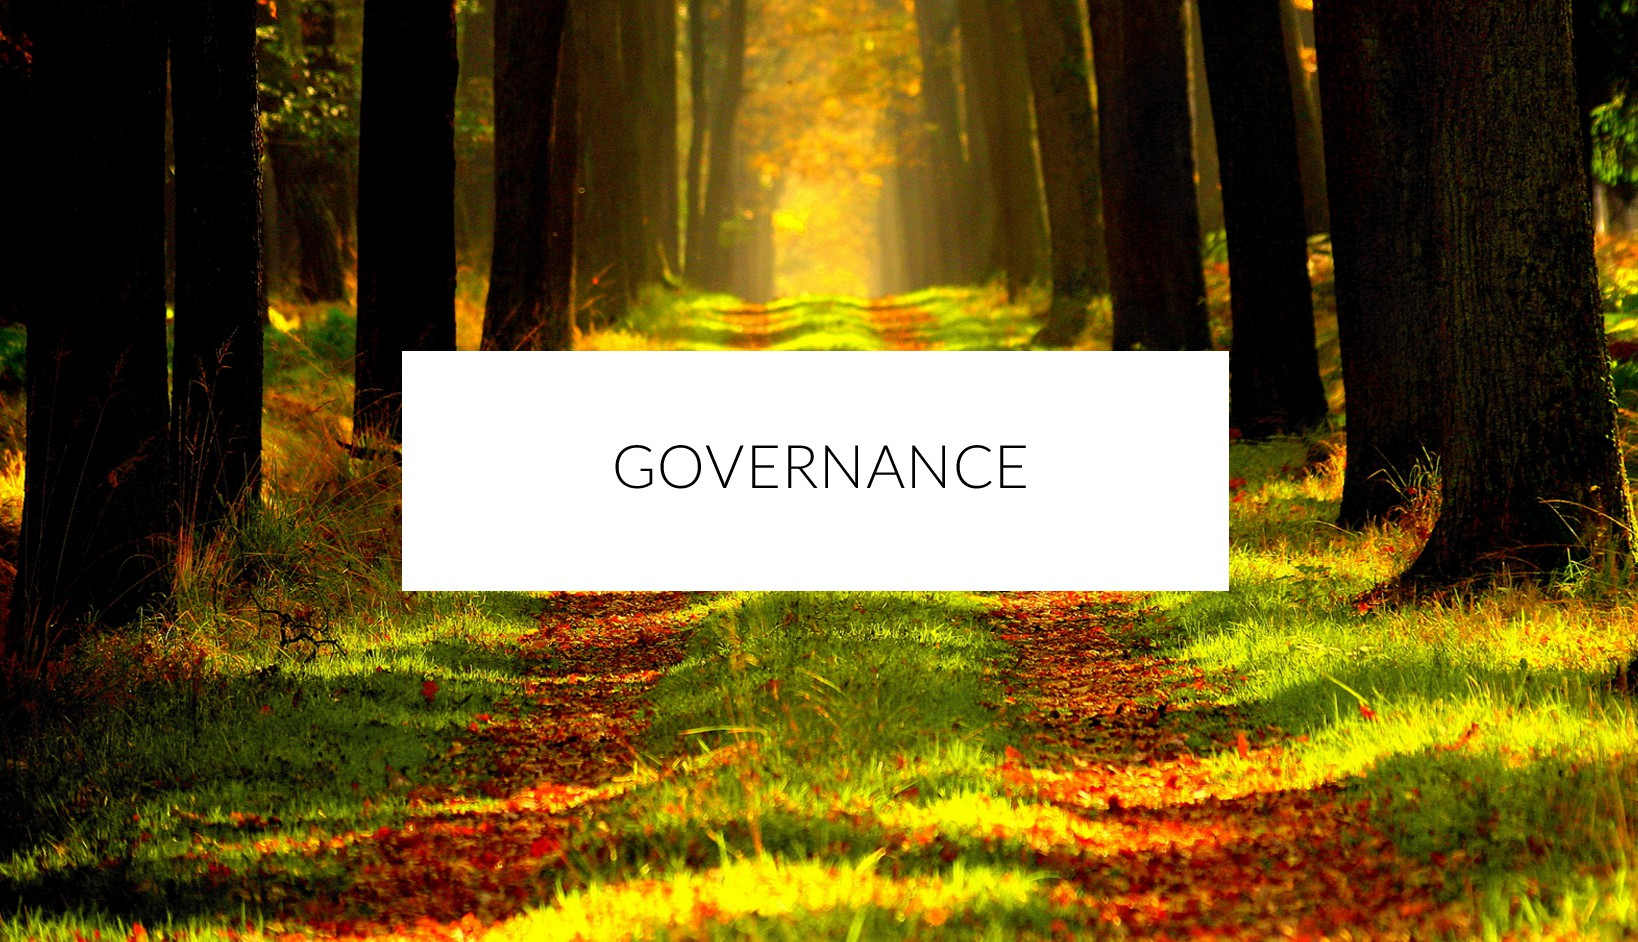 Governance at Dara Community Living